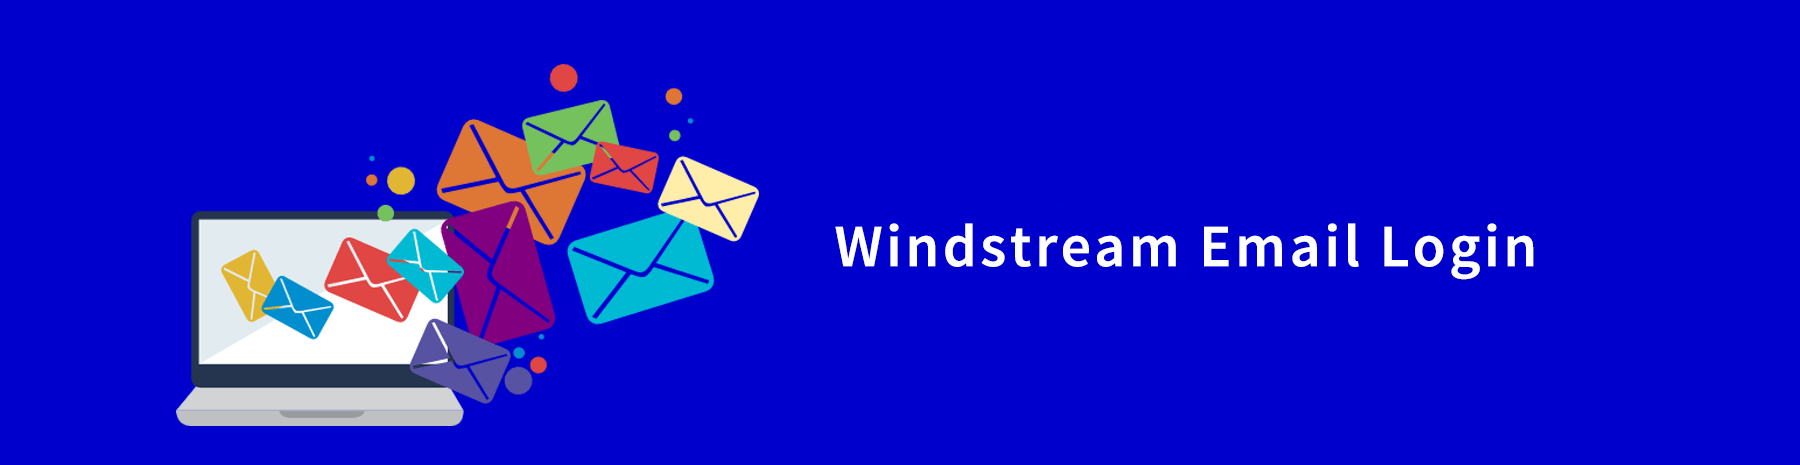 Windstream-Email-login-solution